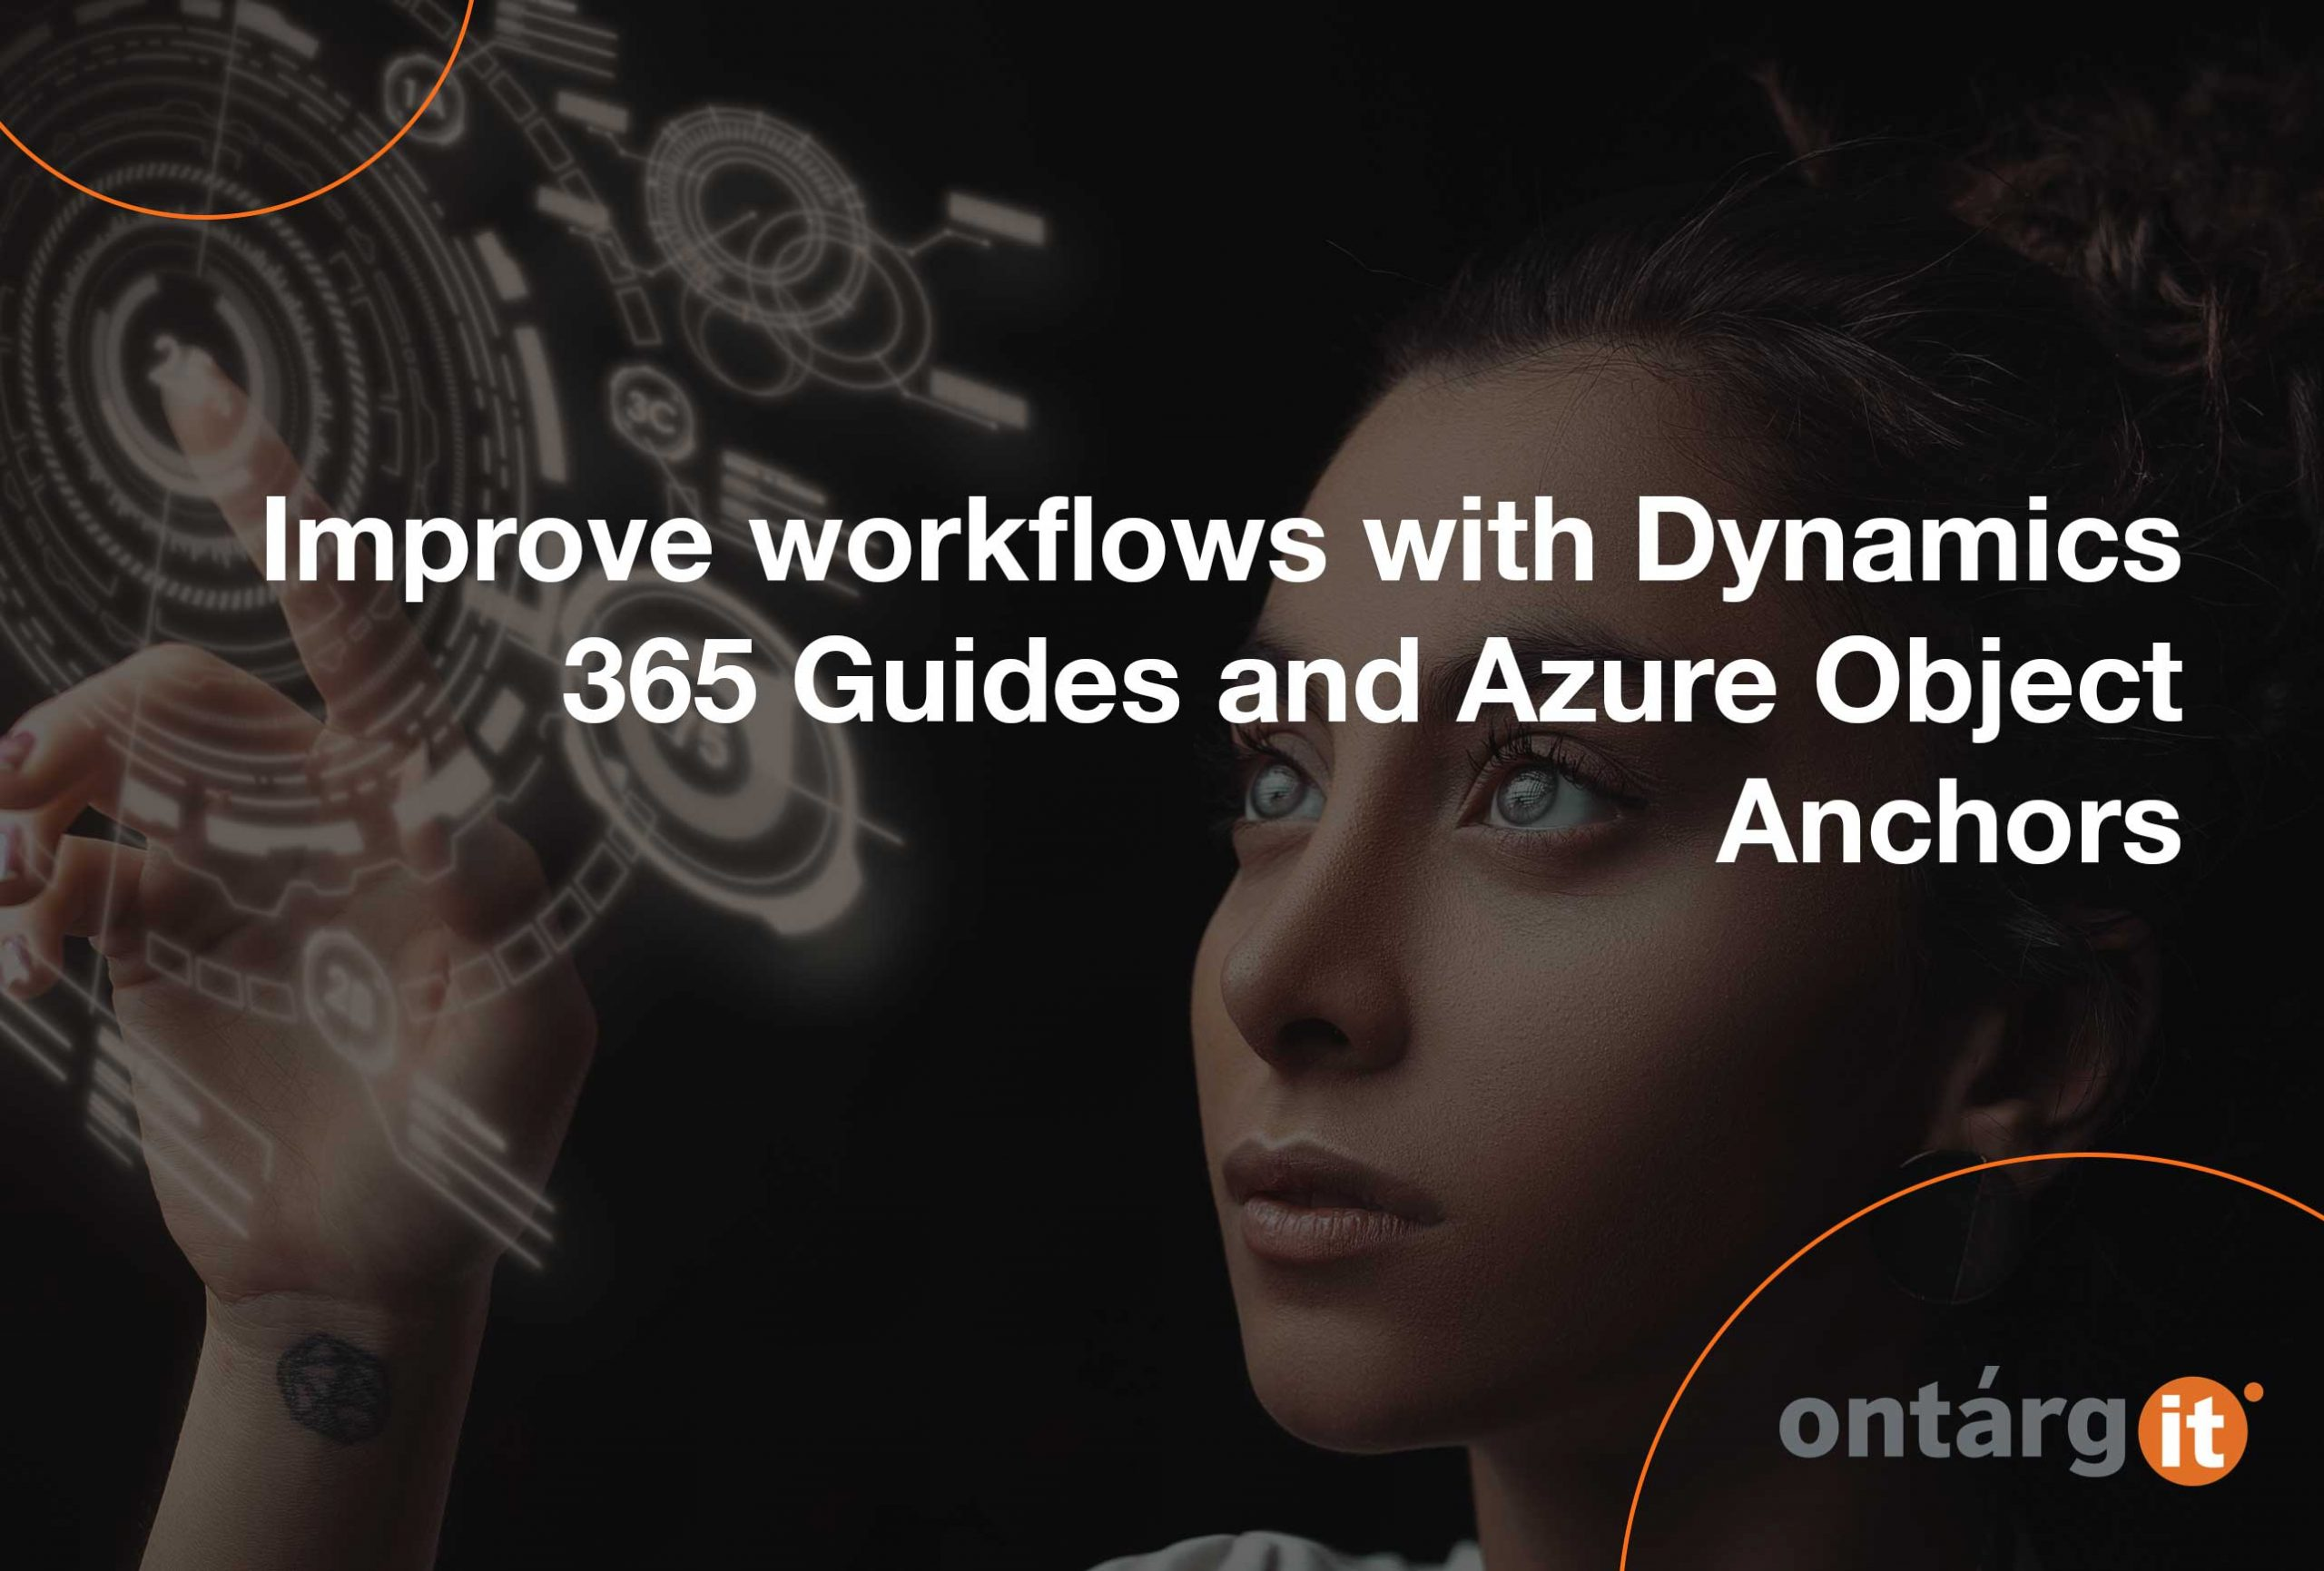 Improve-workflows-with-Dynamics-365-Guides-and-Azure-Object-Anchors